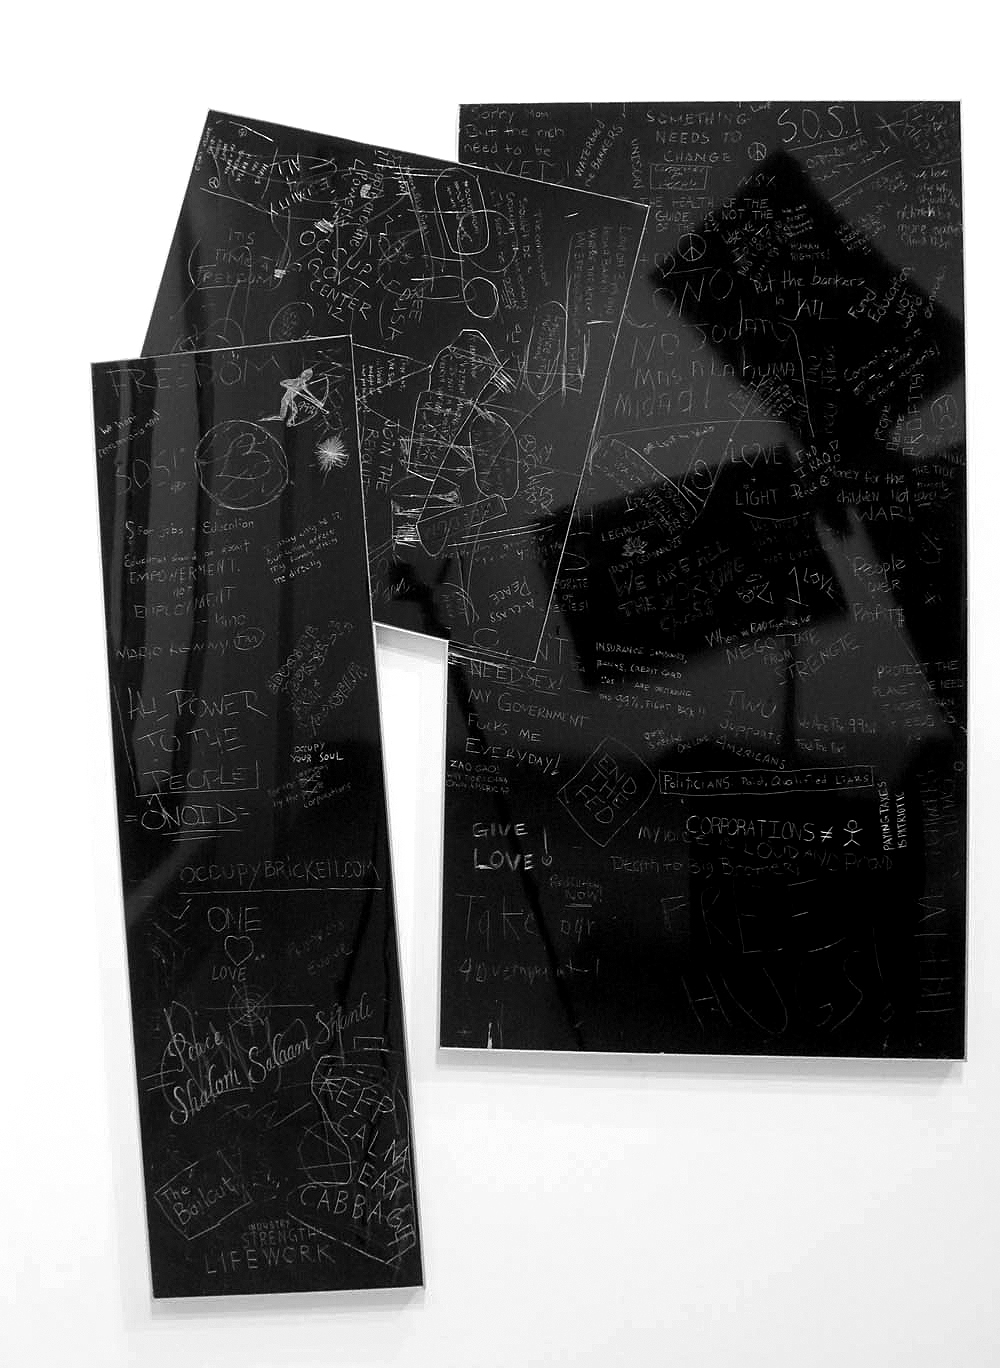 Protest (Occupy/Protest, Miami Metro Area), 2012Adjoined, framed, carved and incised painted aluminum panelsCrowd sourced group drawing80 x 50 inches -